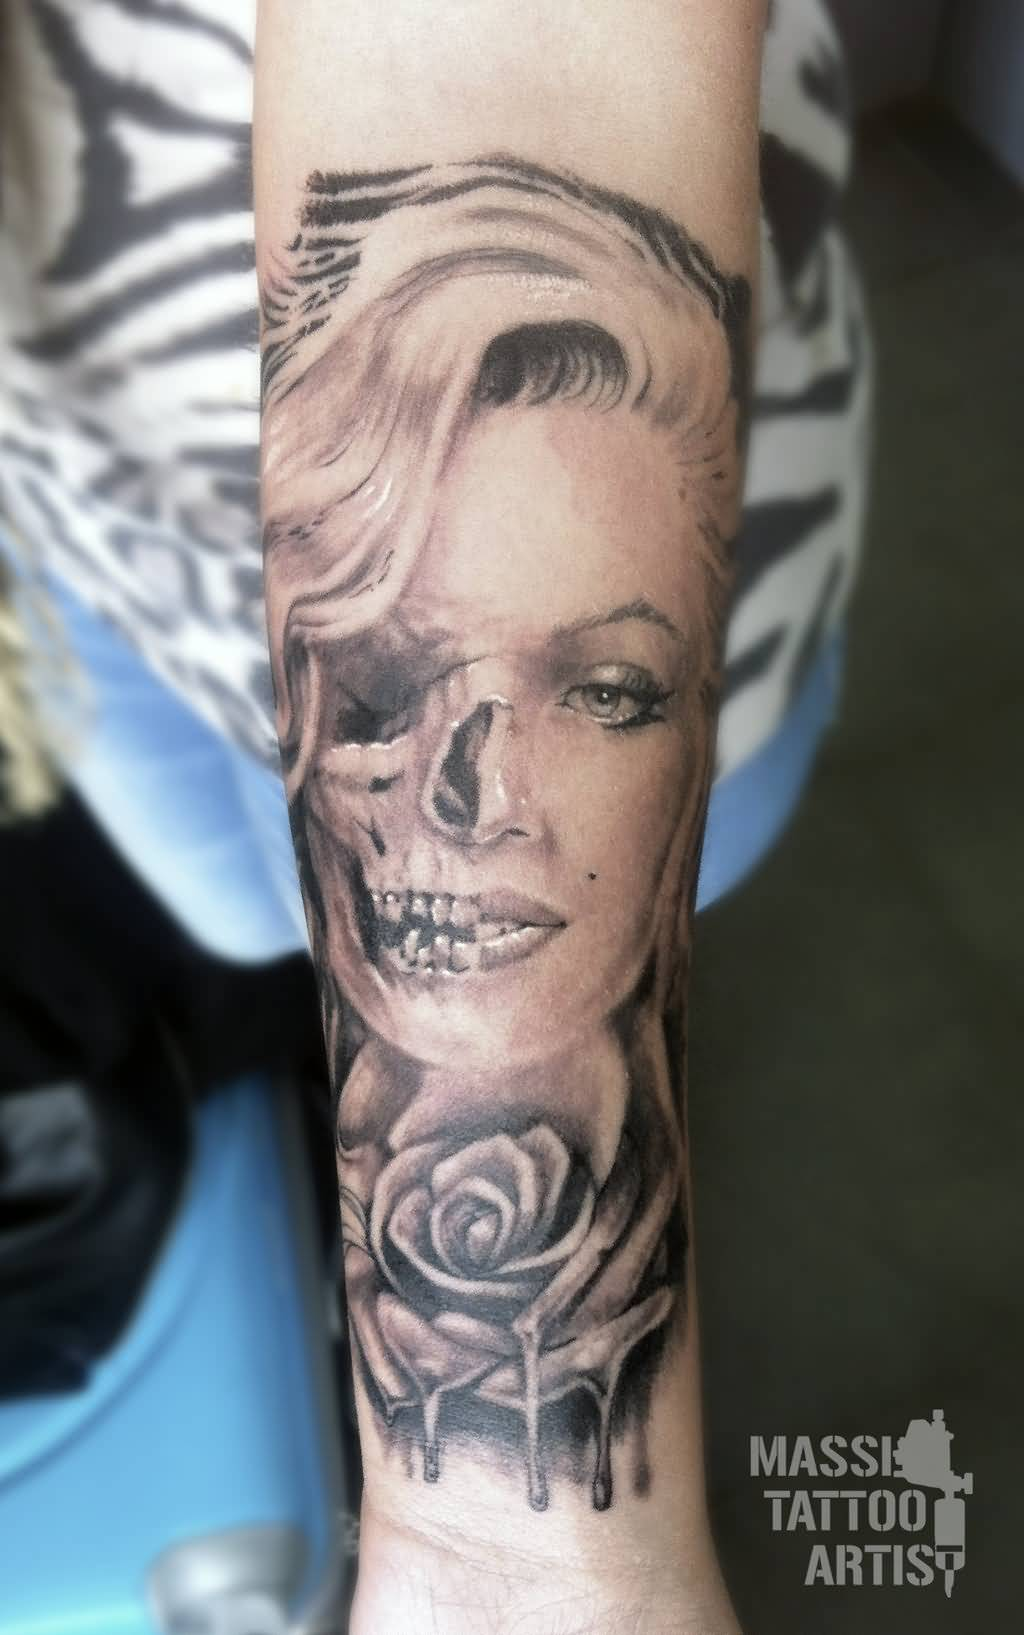 Forearm Marilyn Monroe Skull And Rose Tattoo